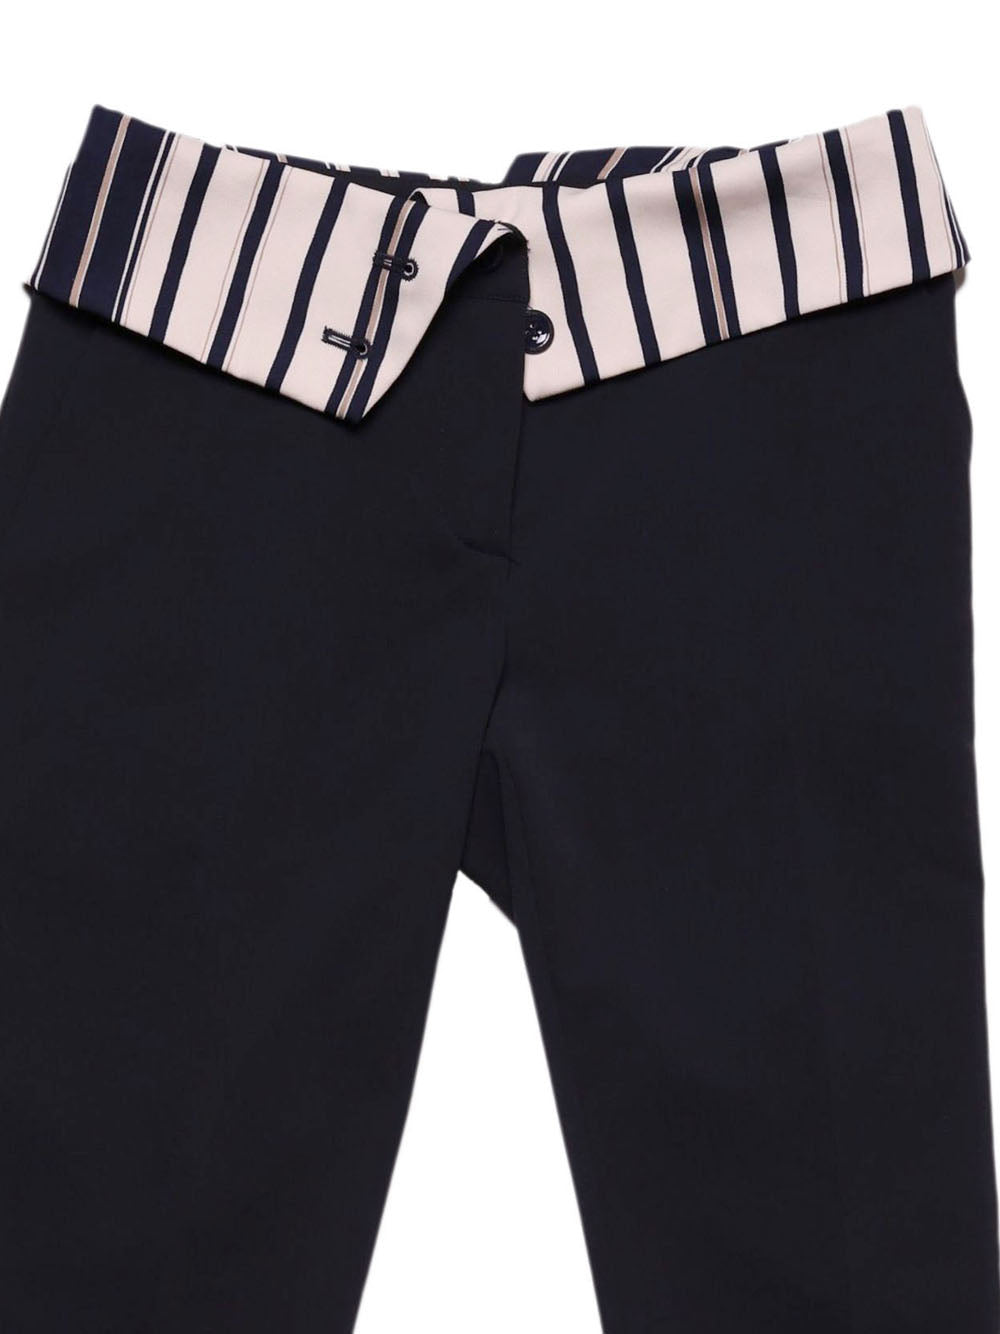 Detail photo of Preloved Paolo Casalini Blue Woman's trousers - size 8/S